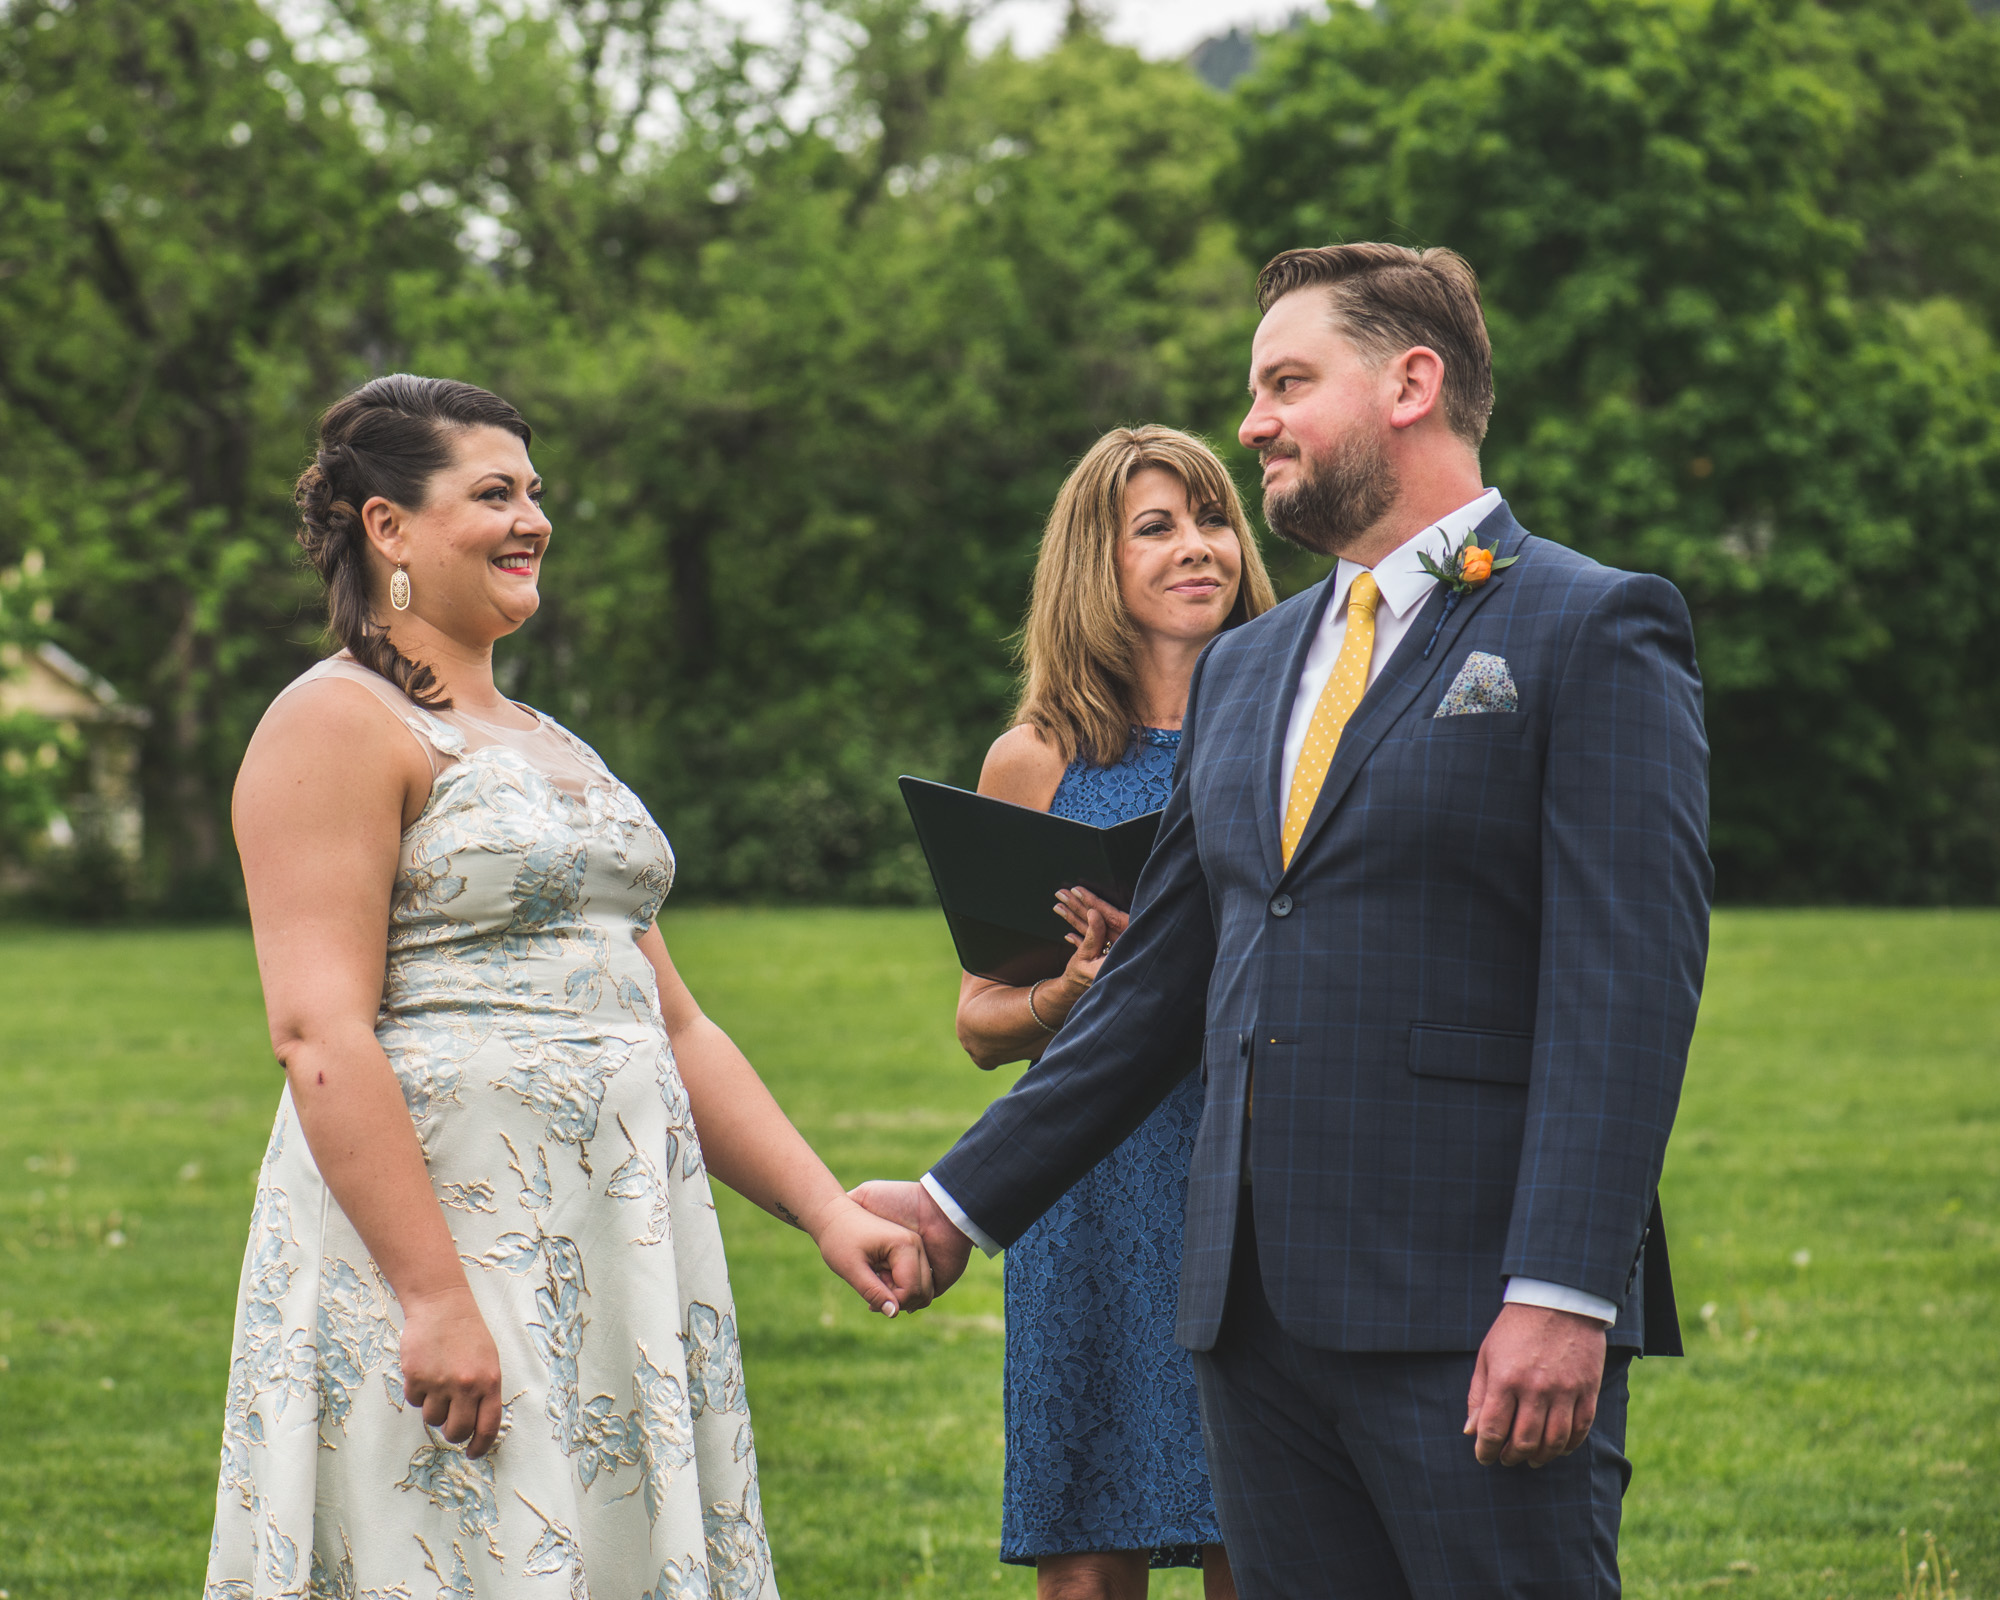 Color photograph of a groom looking lovingly at his bride during their wedding ceremony in Chautauqua Park in Boulder, CO.